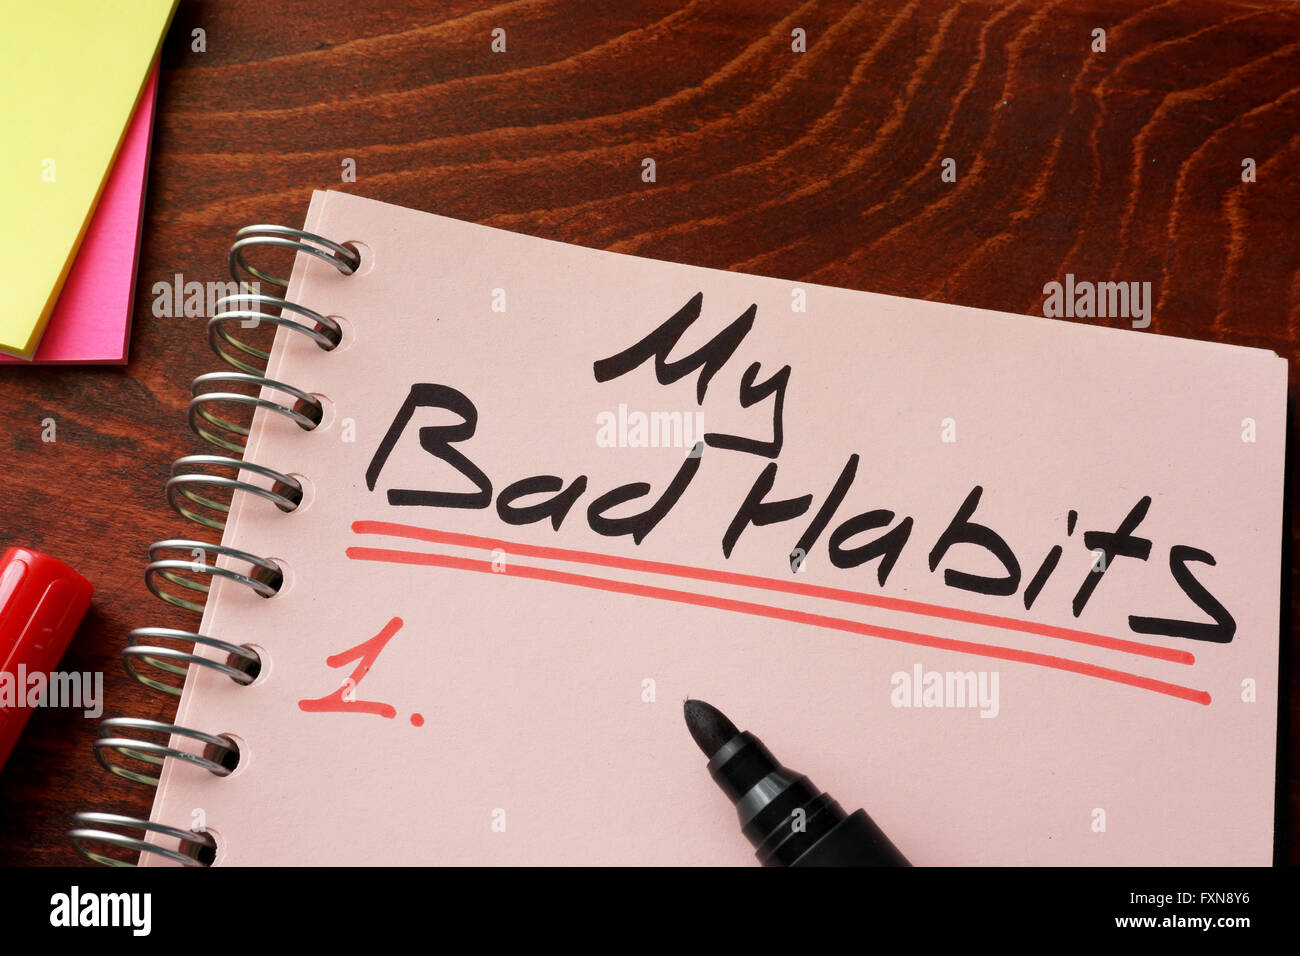 my bad habits Bad habits habits are either good or badeven good habits, if given free play, may turn into bad ones for example, reading is a good habitit helps in acquiring knowledge, in meaningful use of leisure time and healthy entertainment but excess of reading books, magazines etc, is harmful.